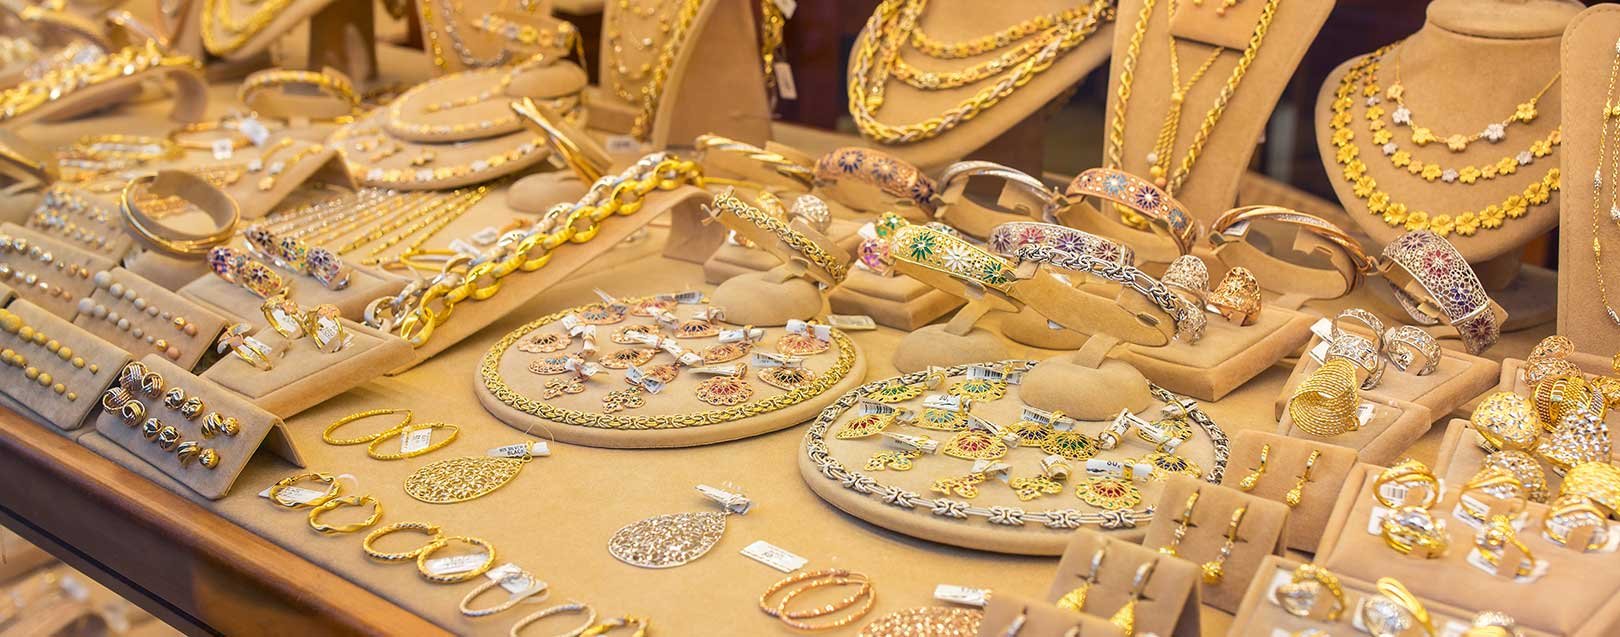 Gems and jewellery exports decline by 4.65% in Apr-Dec FY'18